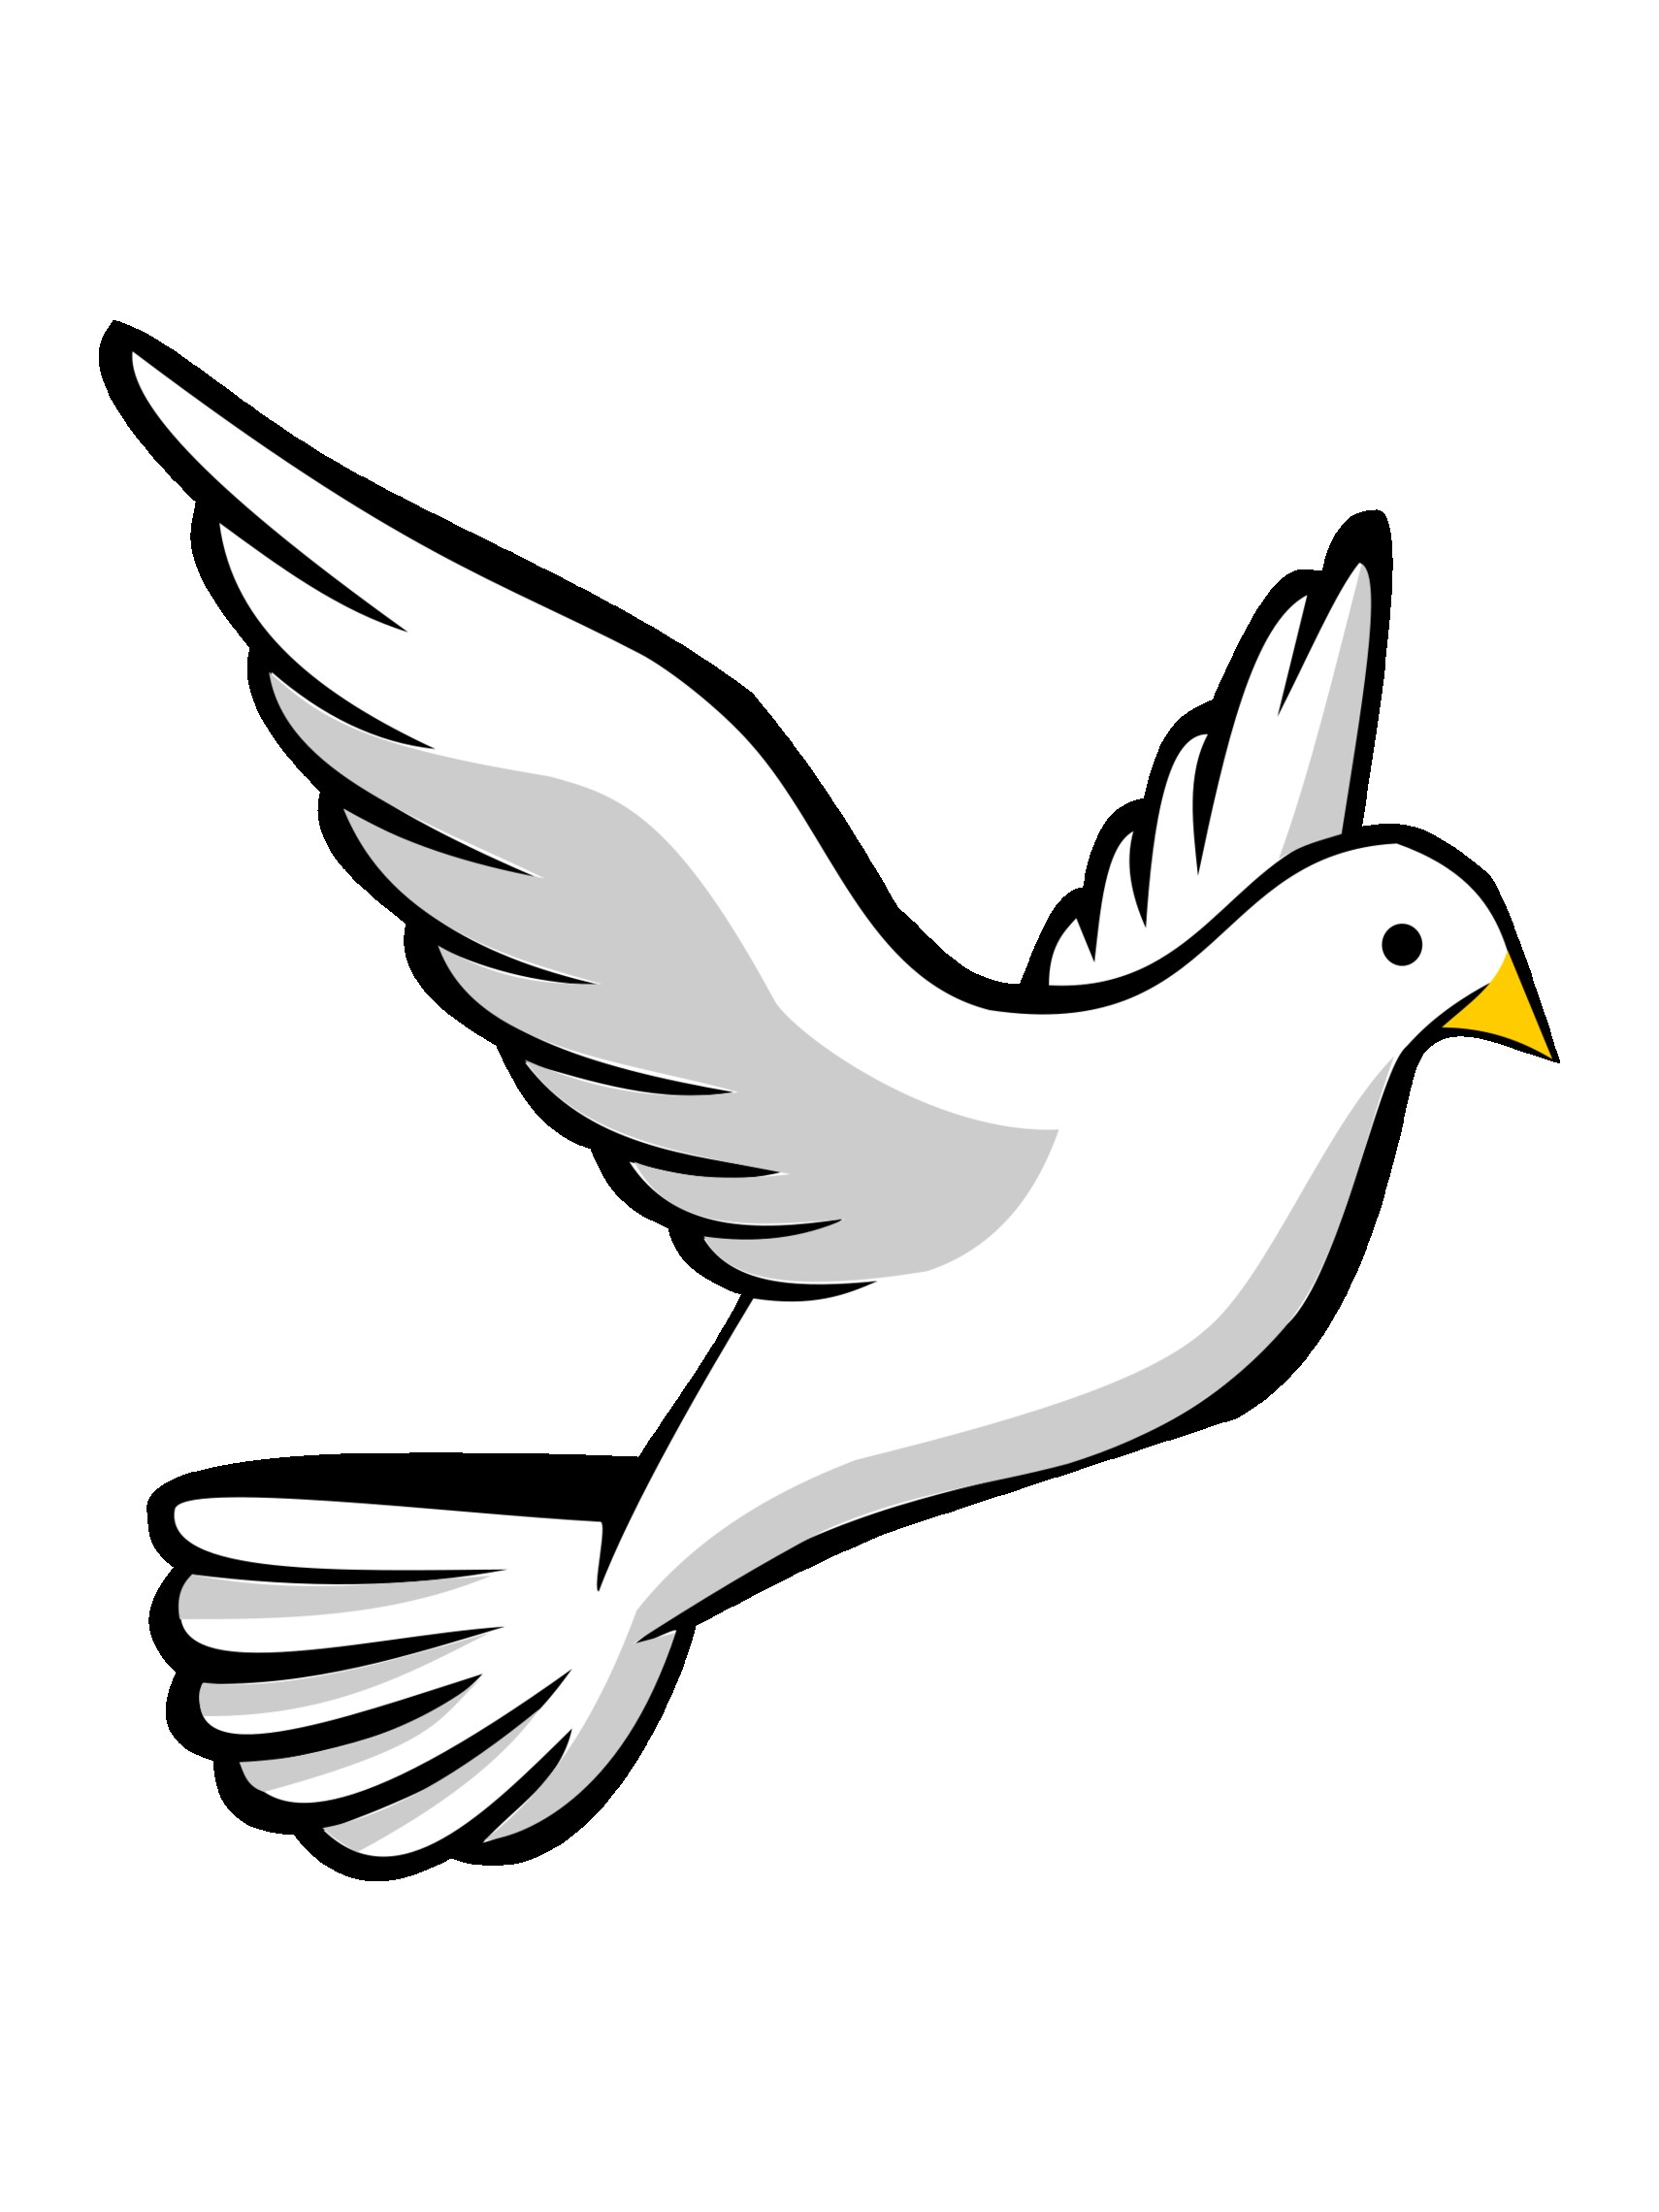 With Clipart Of Birds Black And White Bird Goose 17709733 Cartoon.